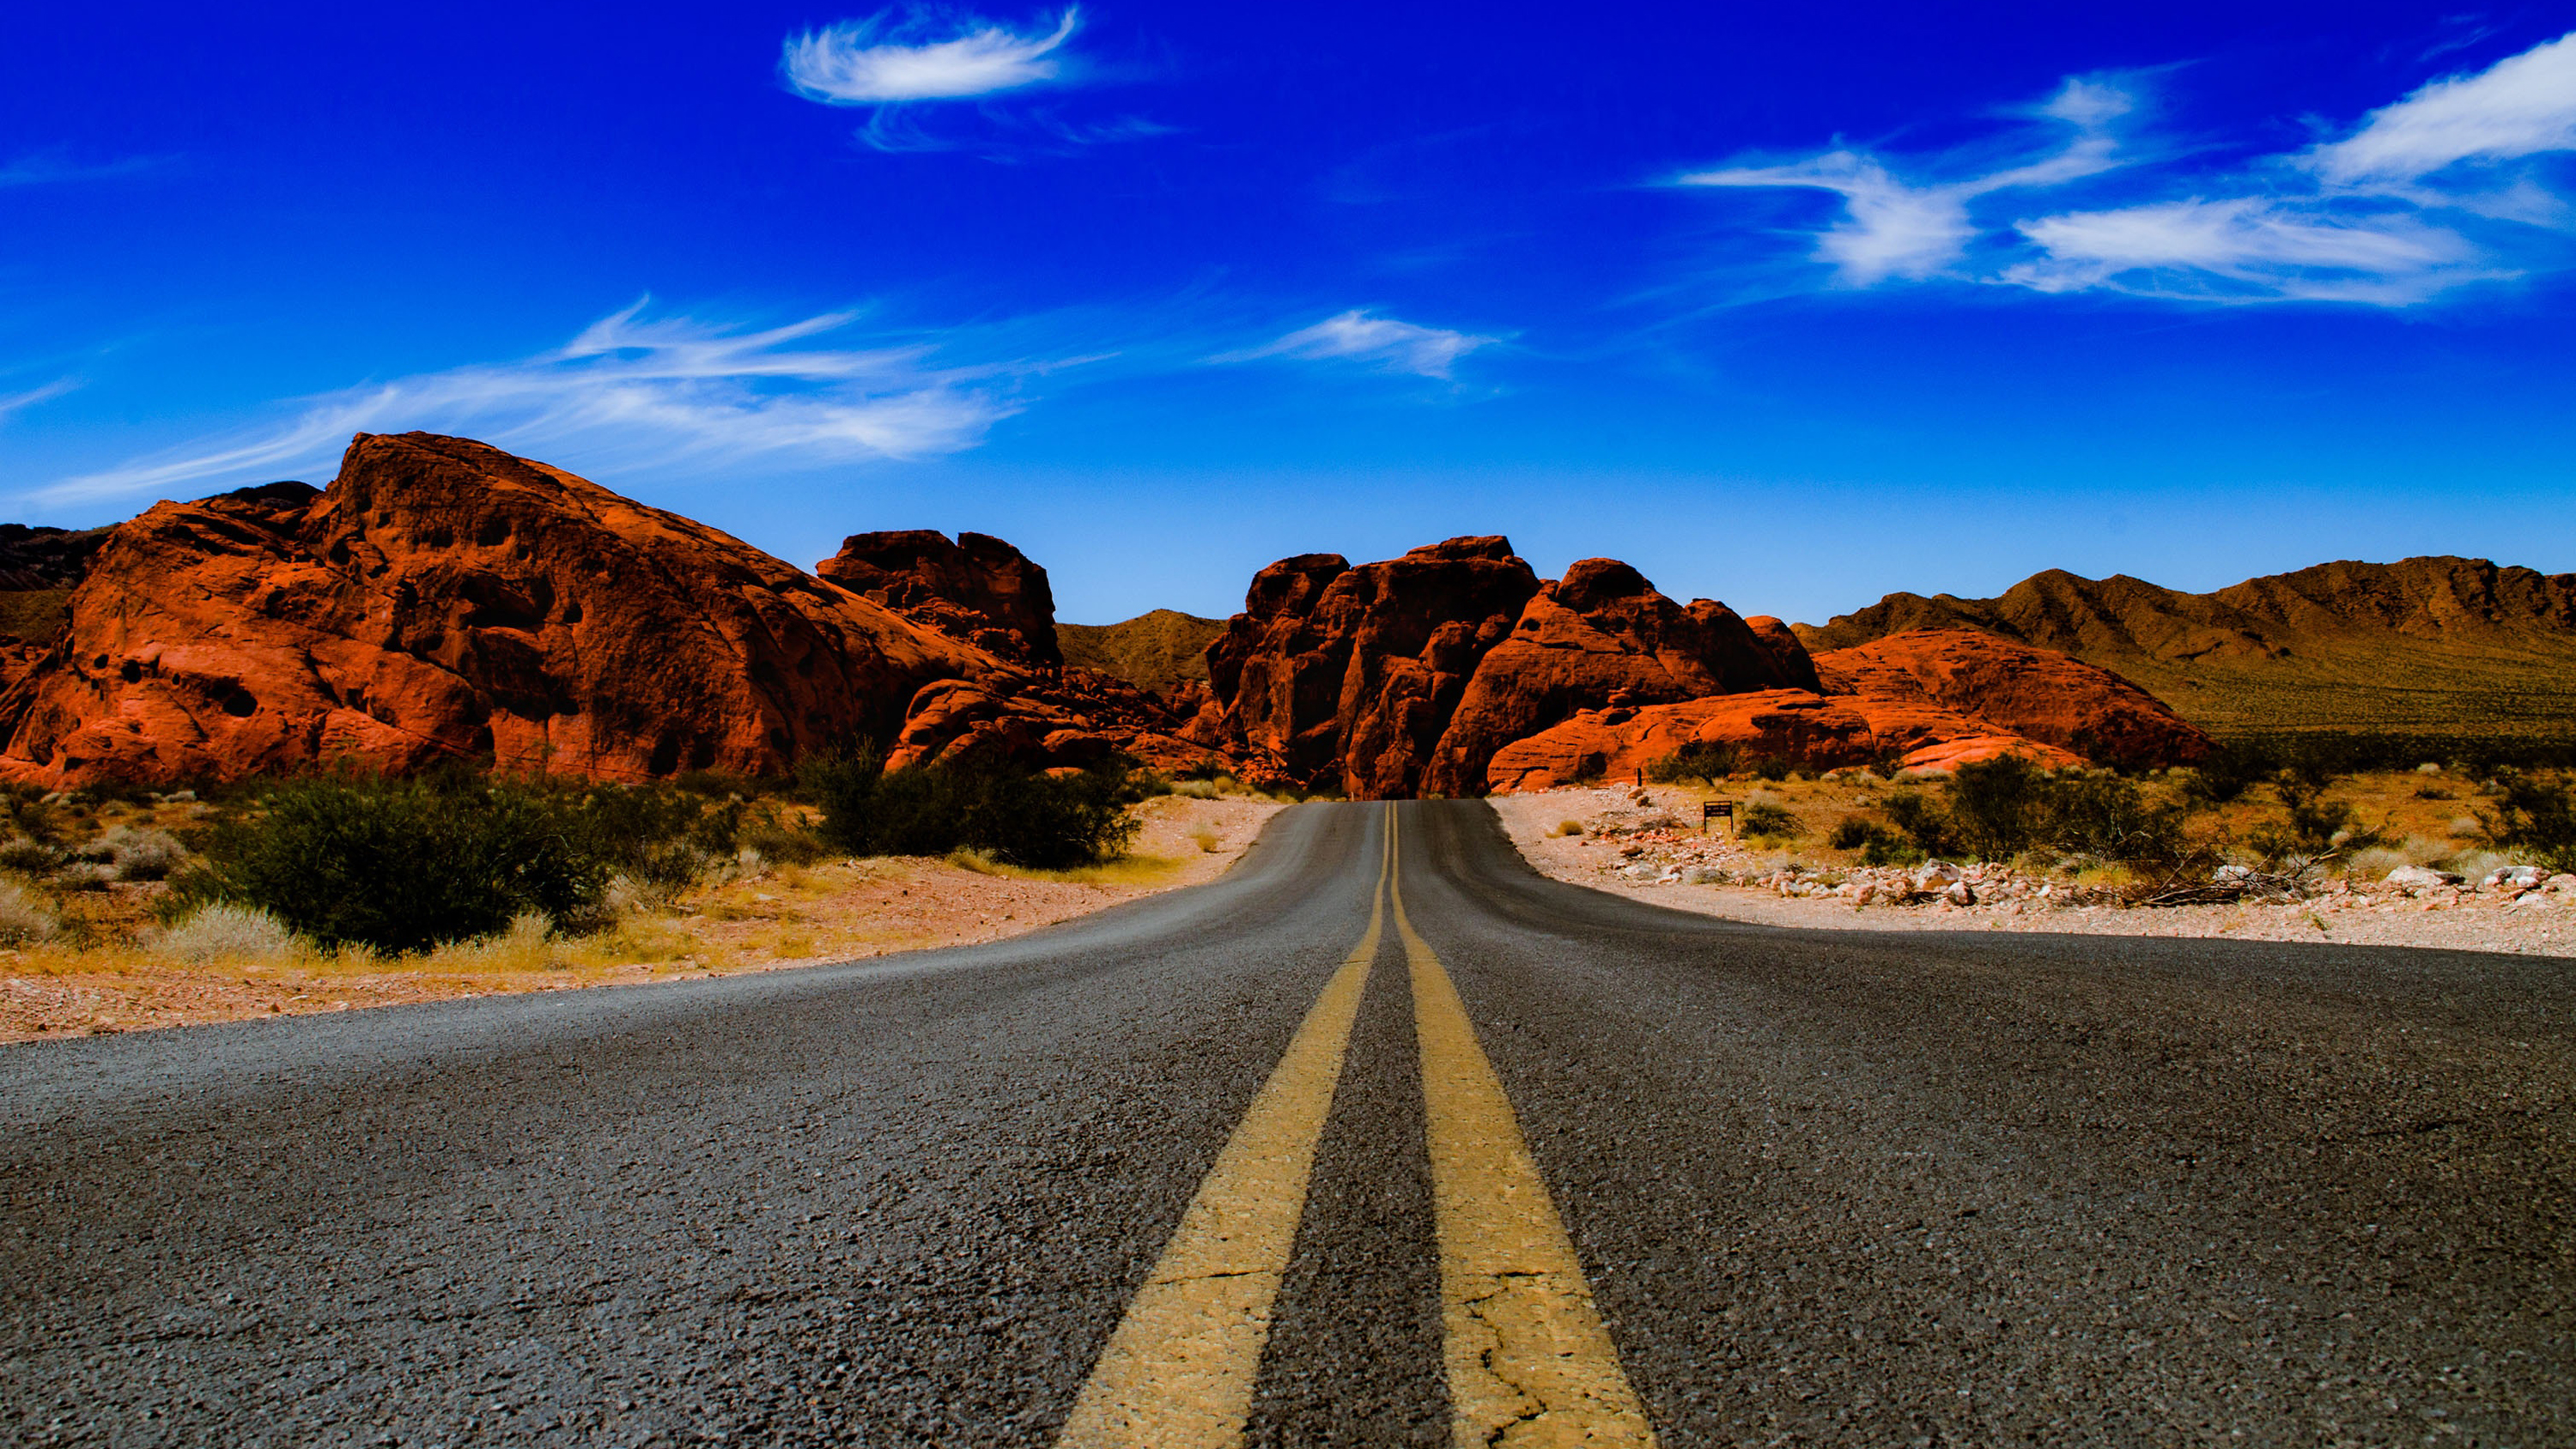 Valley of fire state park road hd wallpaper background image 3000x1688 id 945243 - Nevada wallpaper hd ...